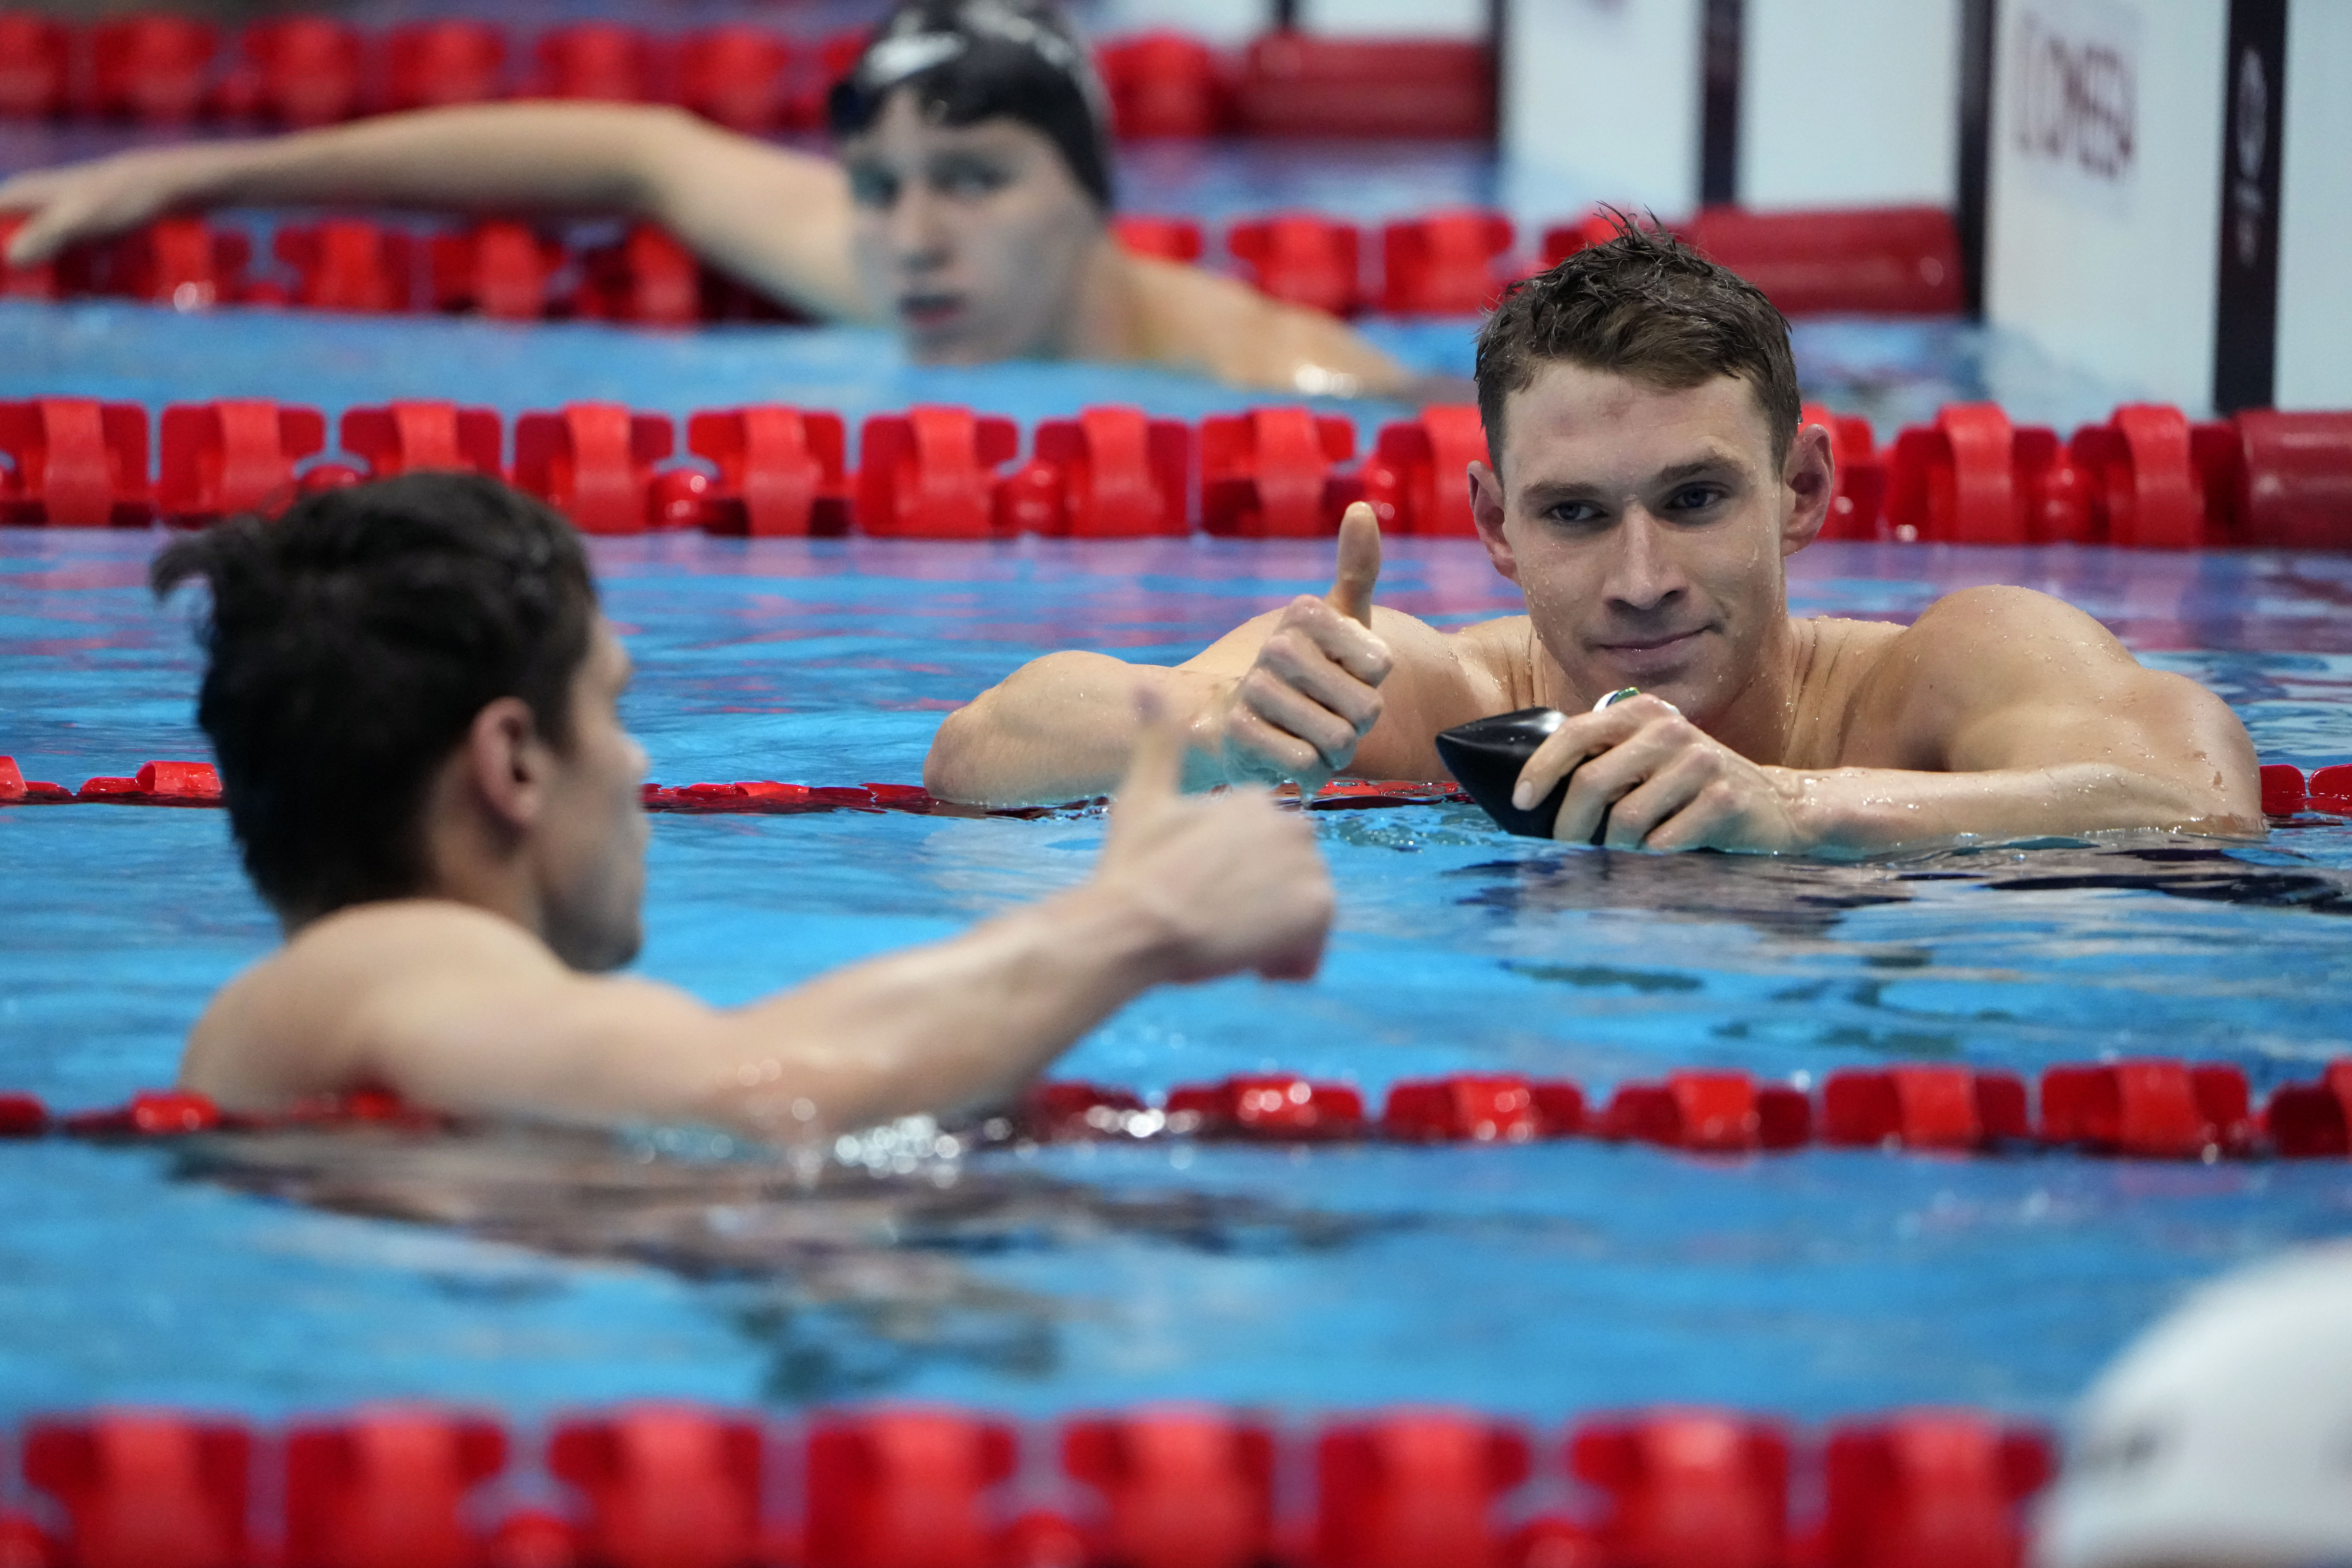 Tokyo Olympics: ROC answers Ryan Murphy's doping comments